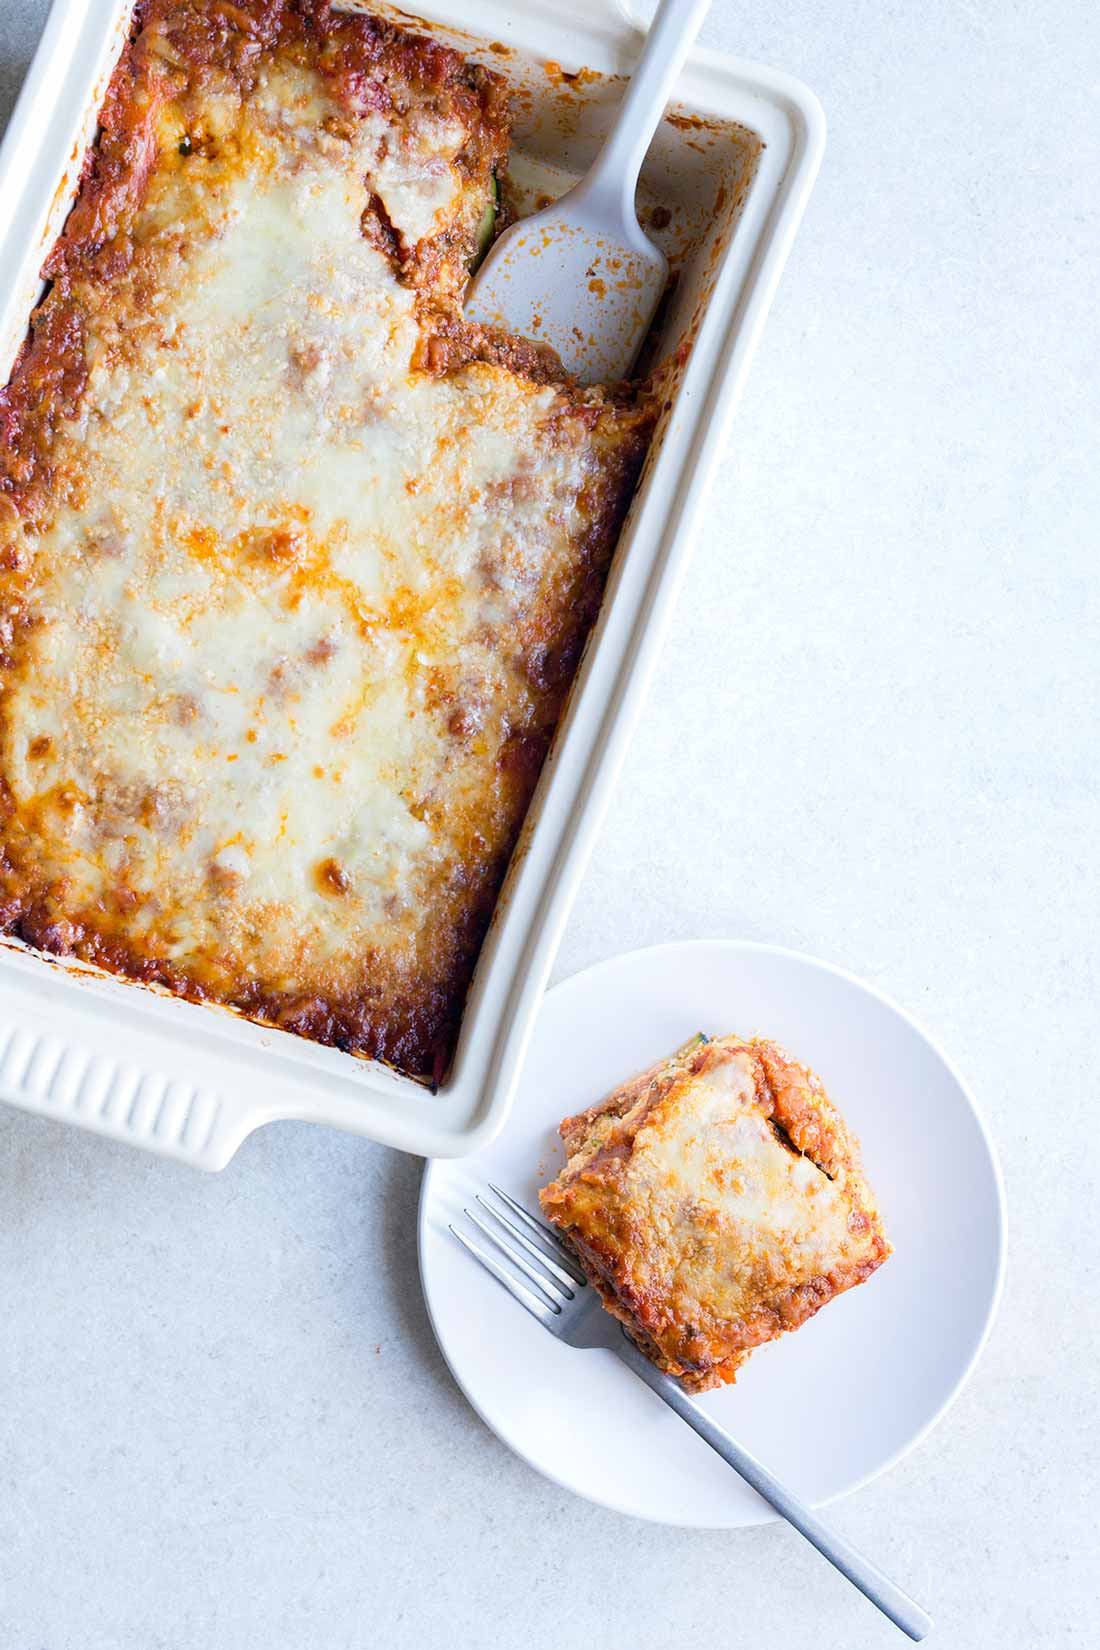 A photo of zucchini lasagna in a casserole dish, next to a slice of lasagna on a plate.